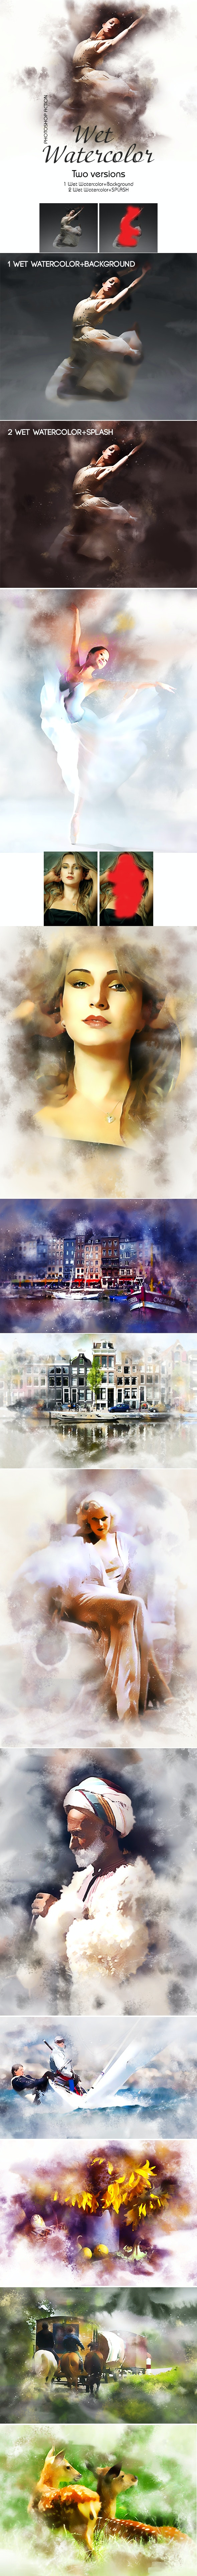 Wet Watercolor Photoshop Action - Photo Effects Actions